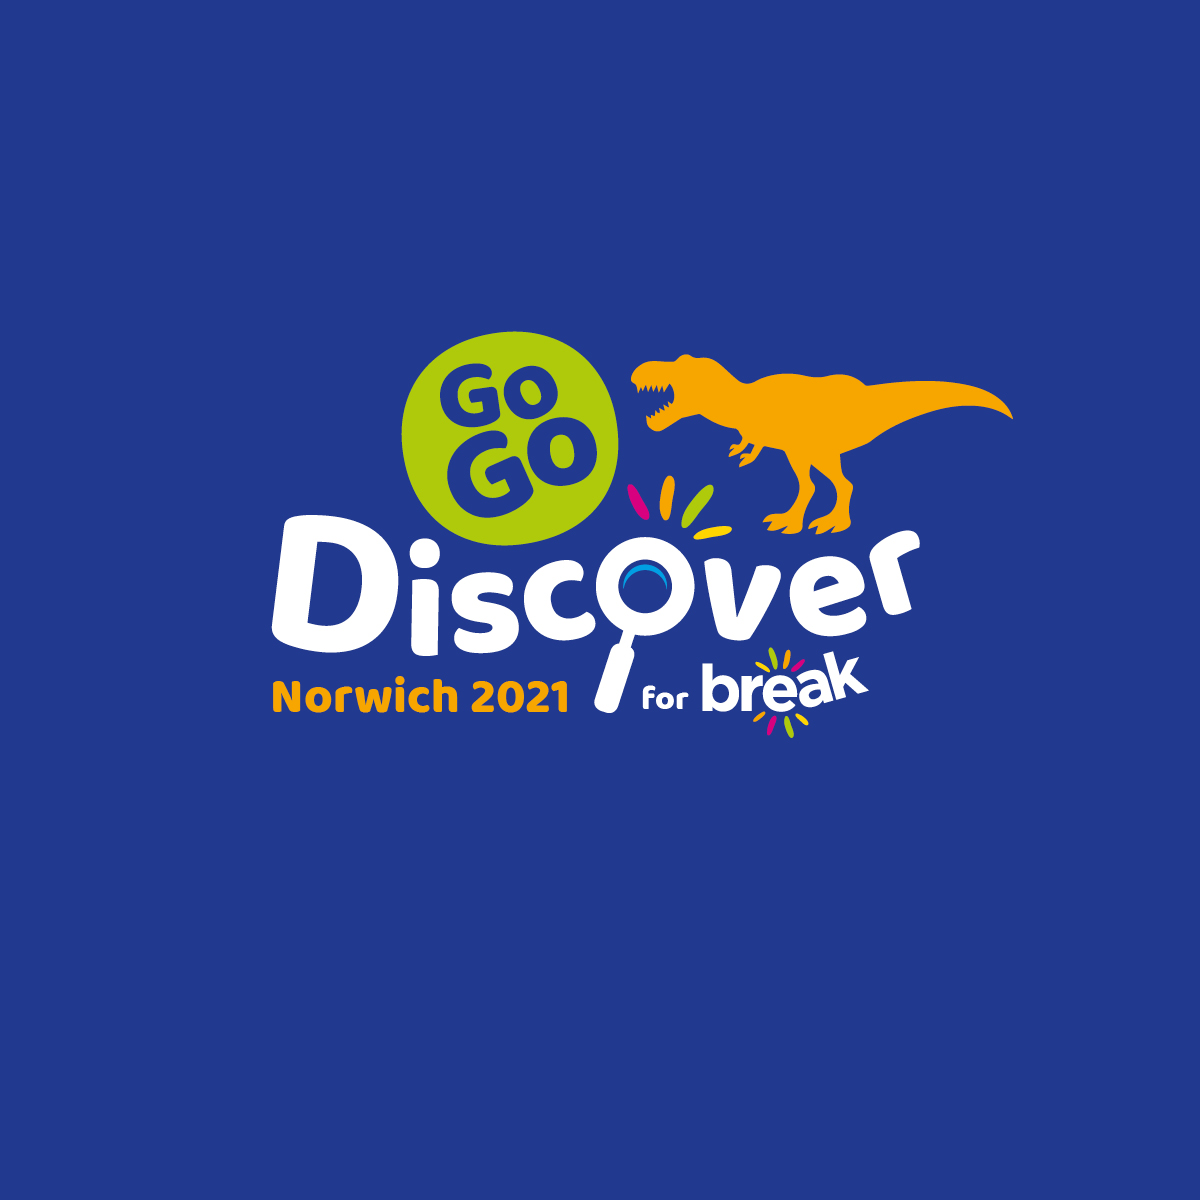 Break's GoGoDiscover With FOUR